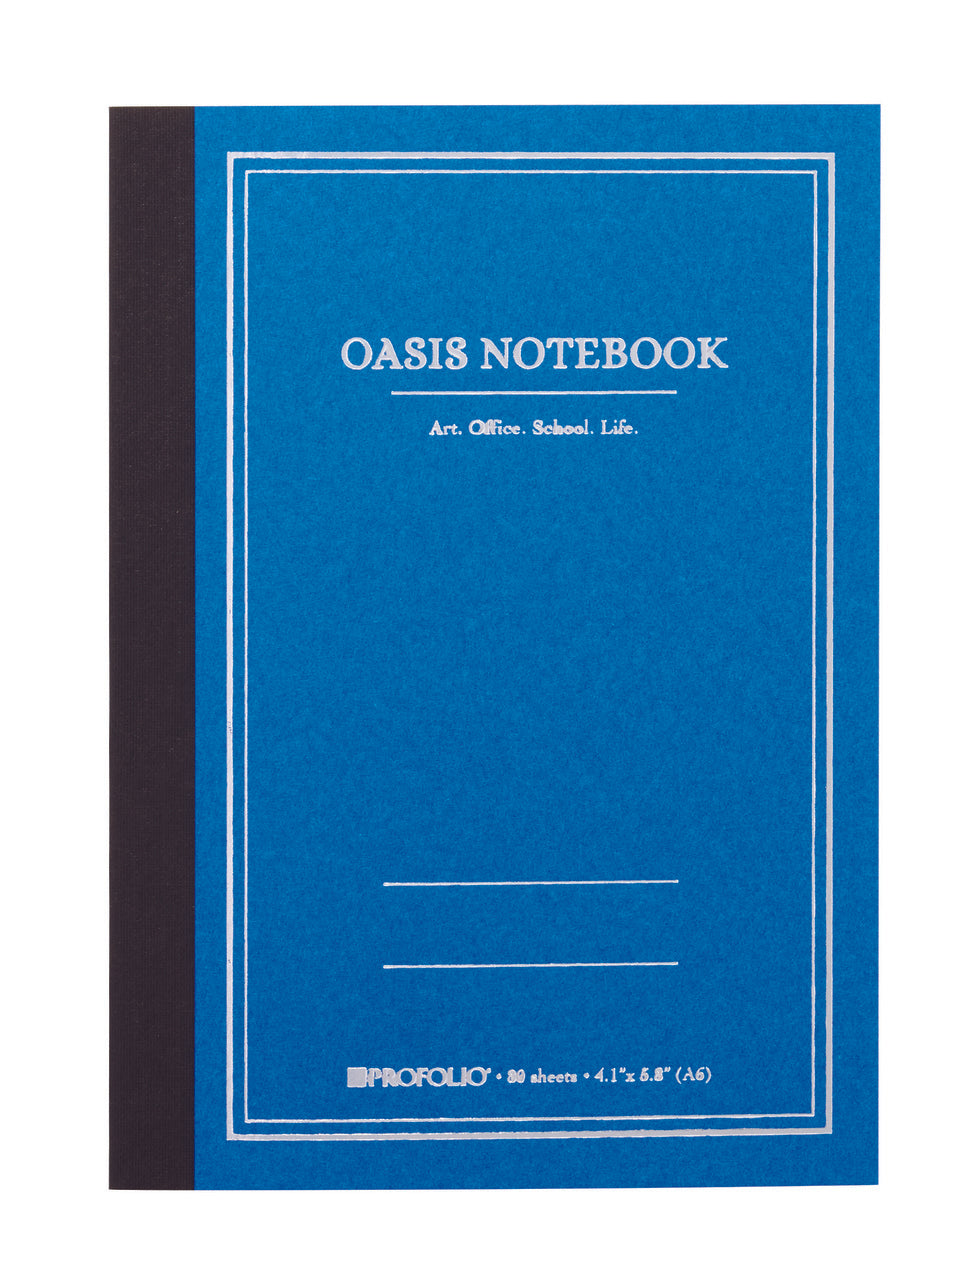 ProFolio Oasis Notebook in sky blue.